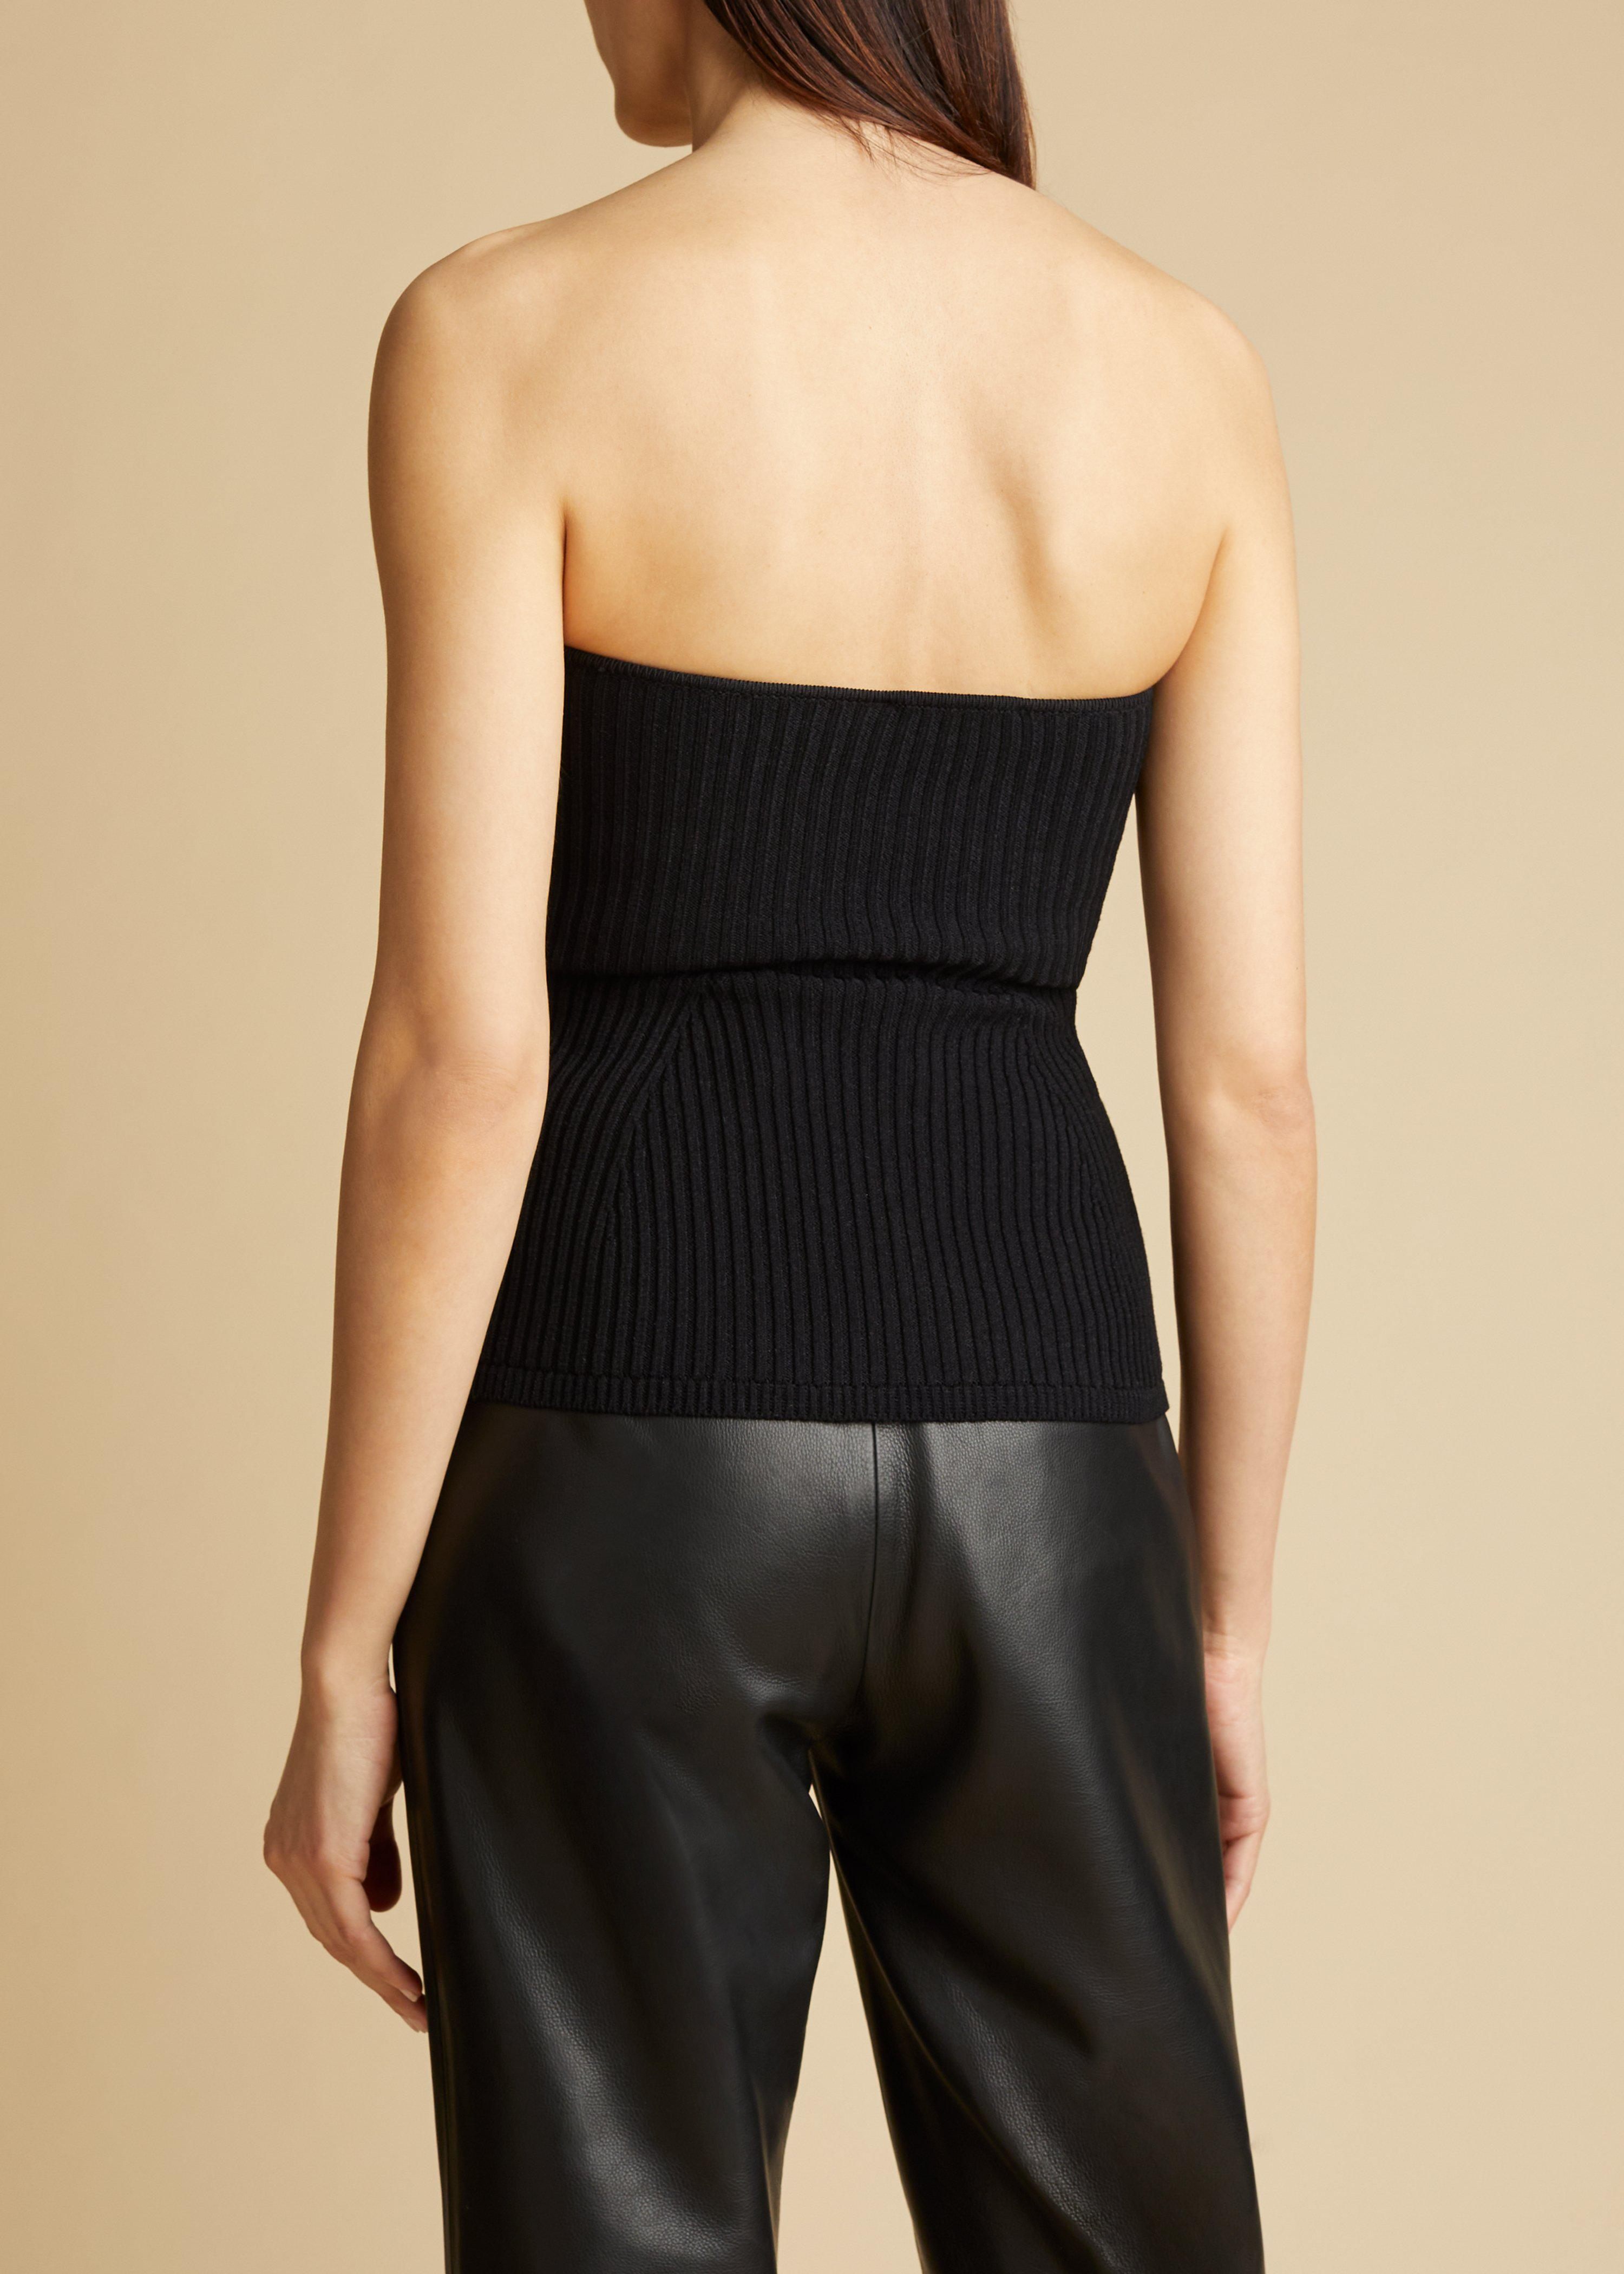 The Lucie Top in Black 2